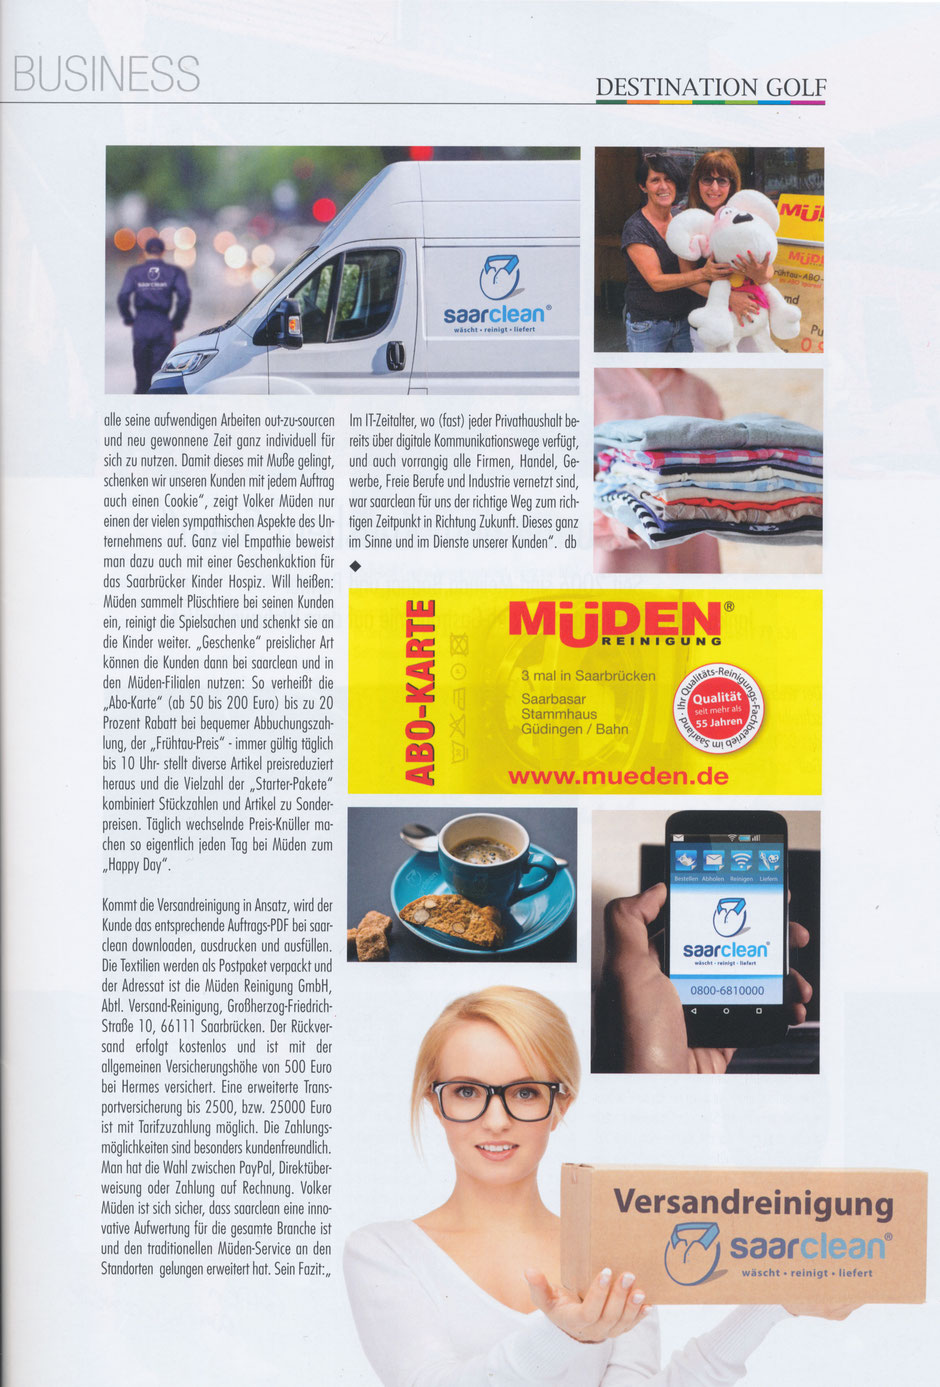 mueden.de, Presse, November 2016, Destination Golf, mueden & saarclean